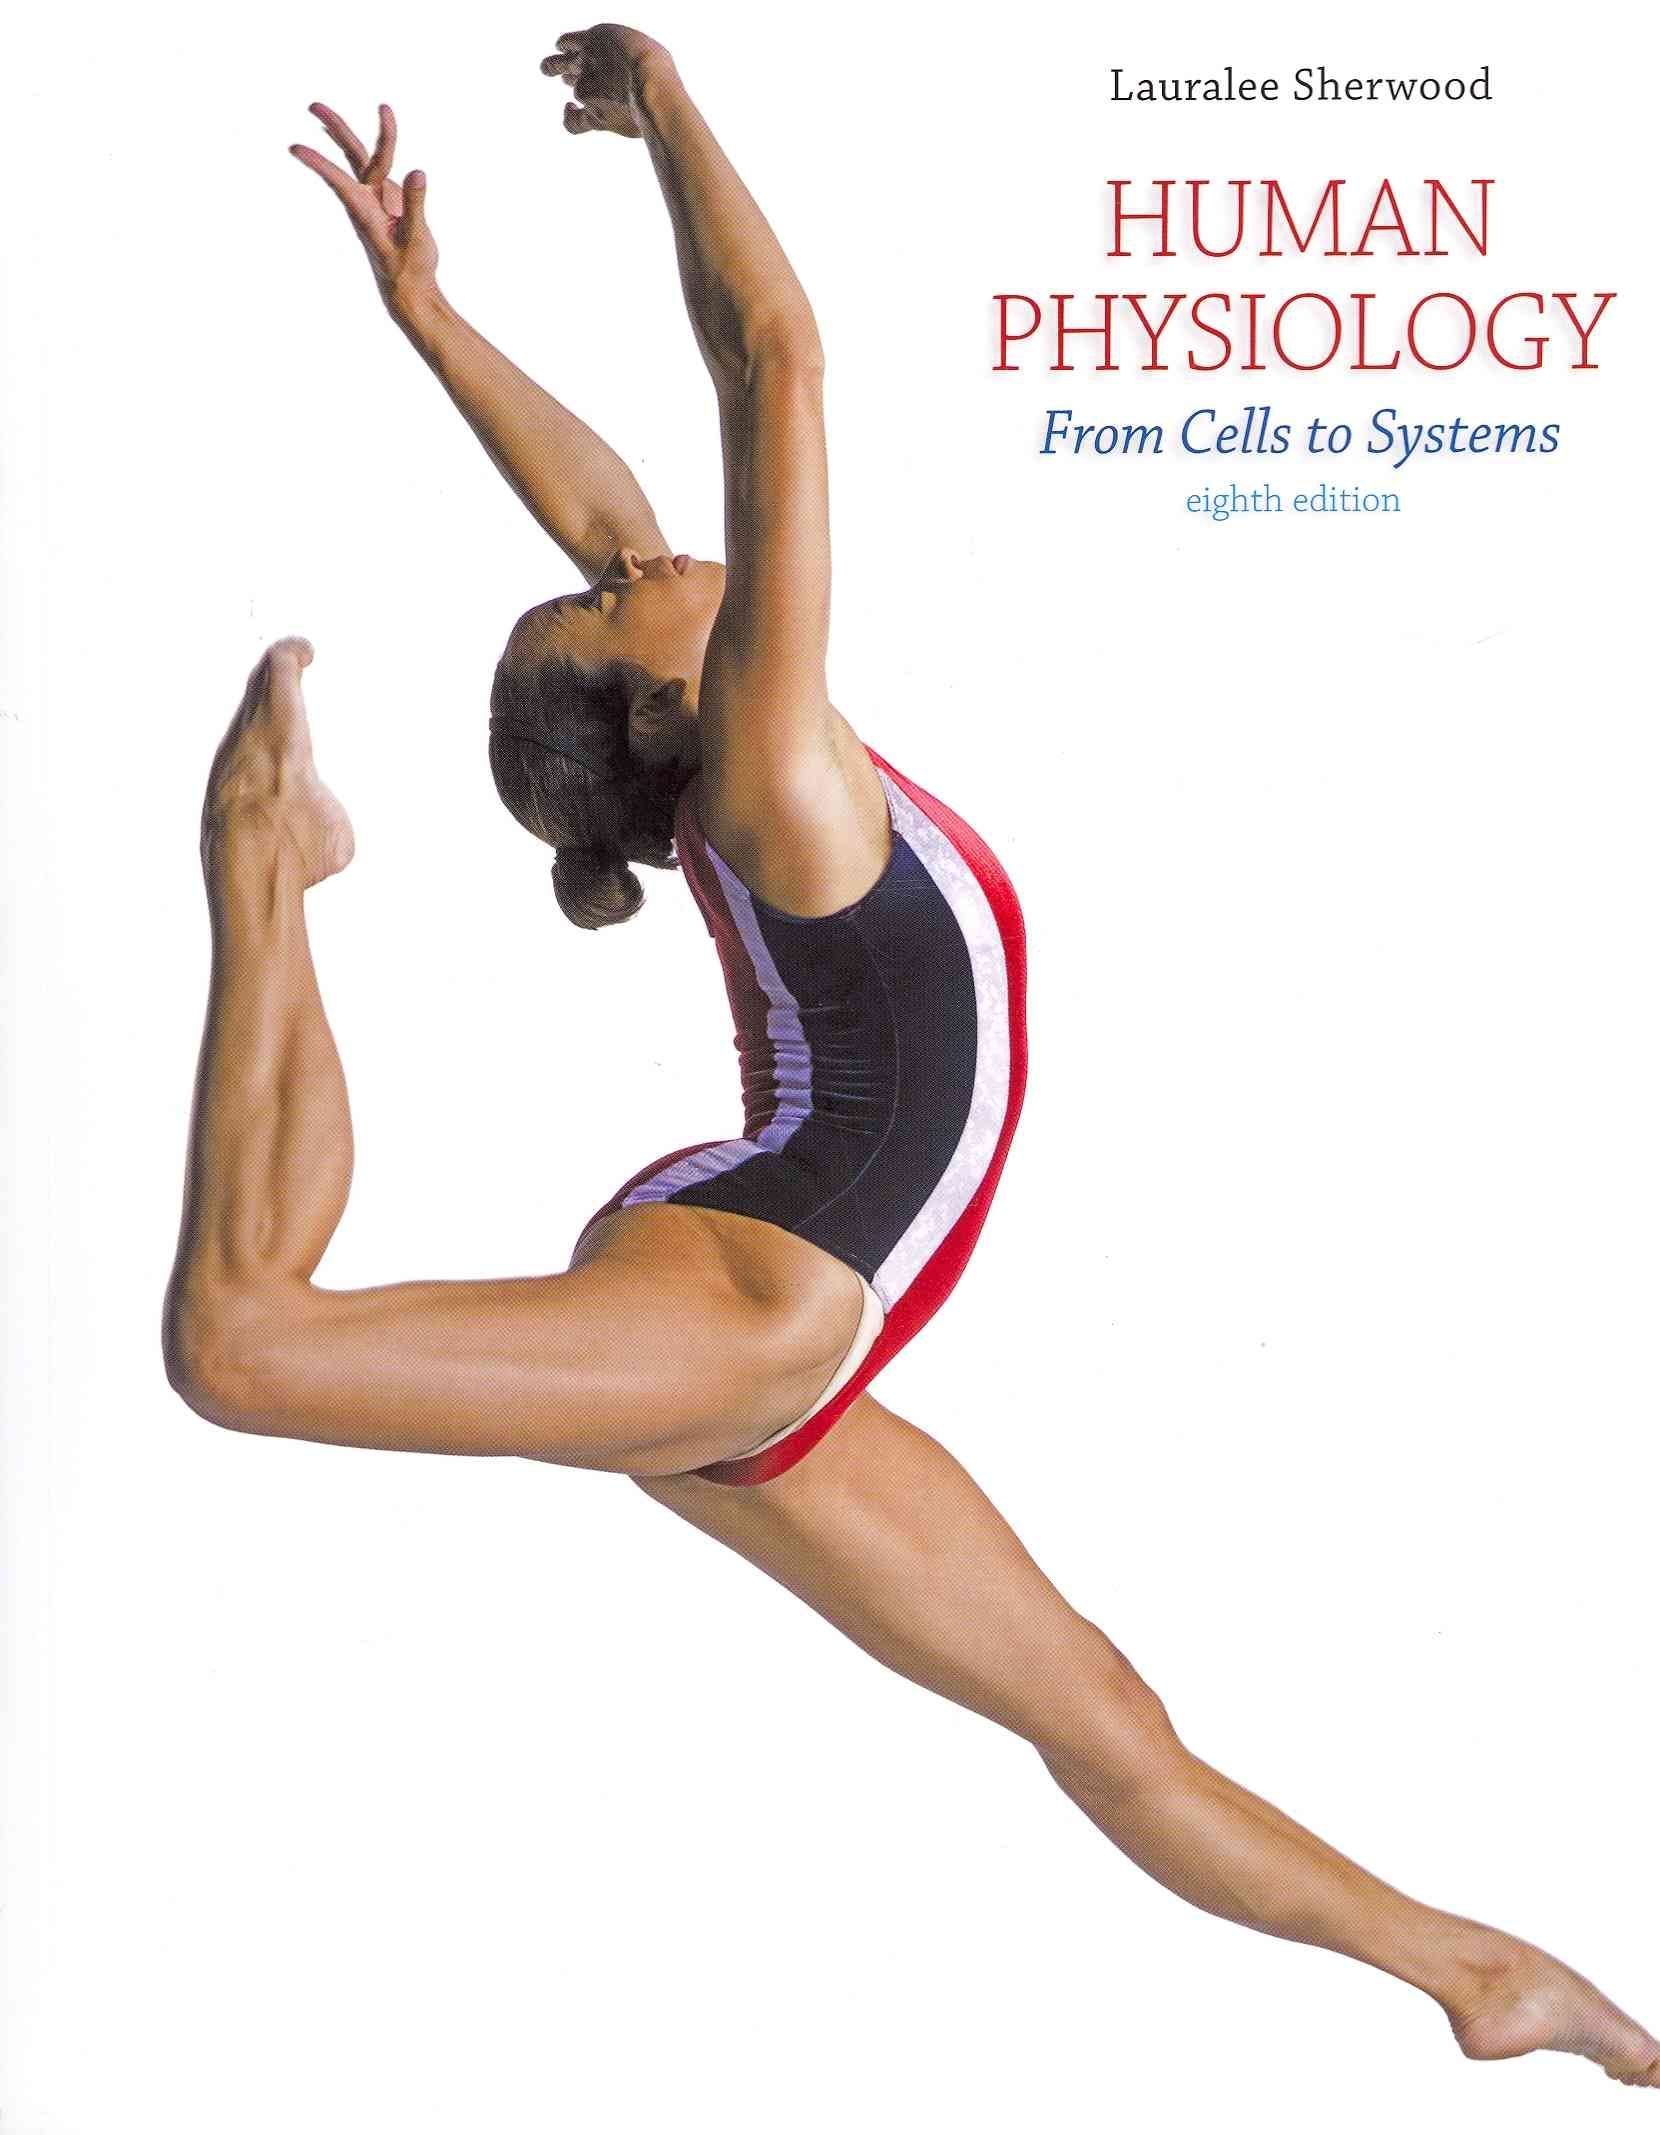 Human physiology from cells to systems 9th edition by lauralee human physiology from cells to systems 9th edition by lauralee sherwood ebook humanphysiology humanphysiologyfromcellstosystems fandeluxe Image collections